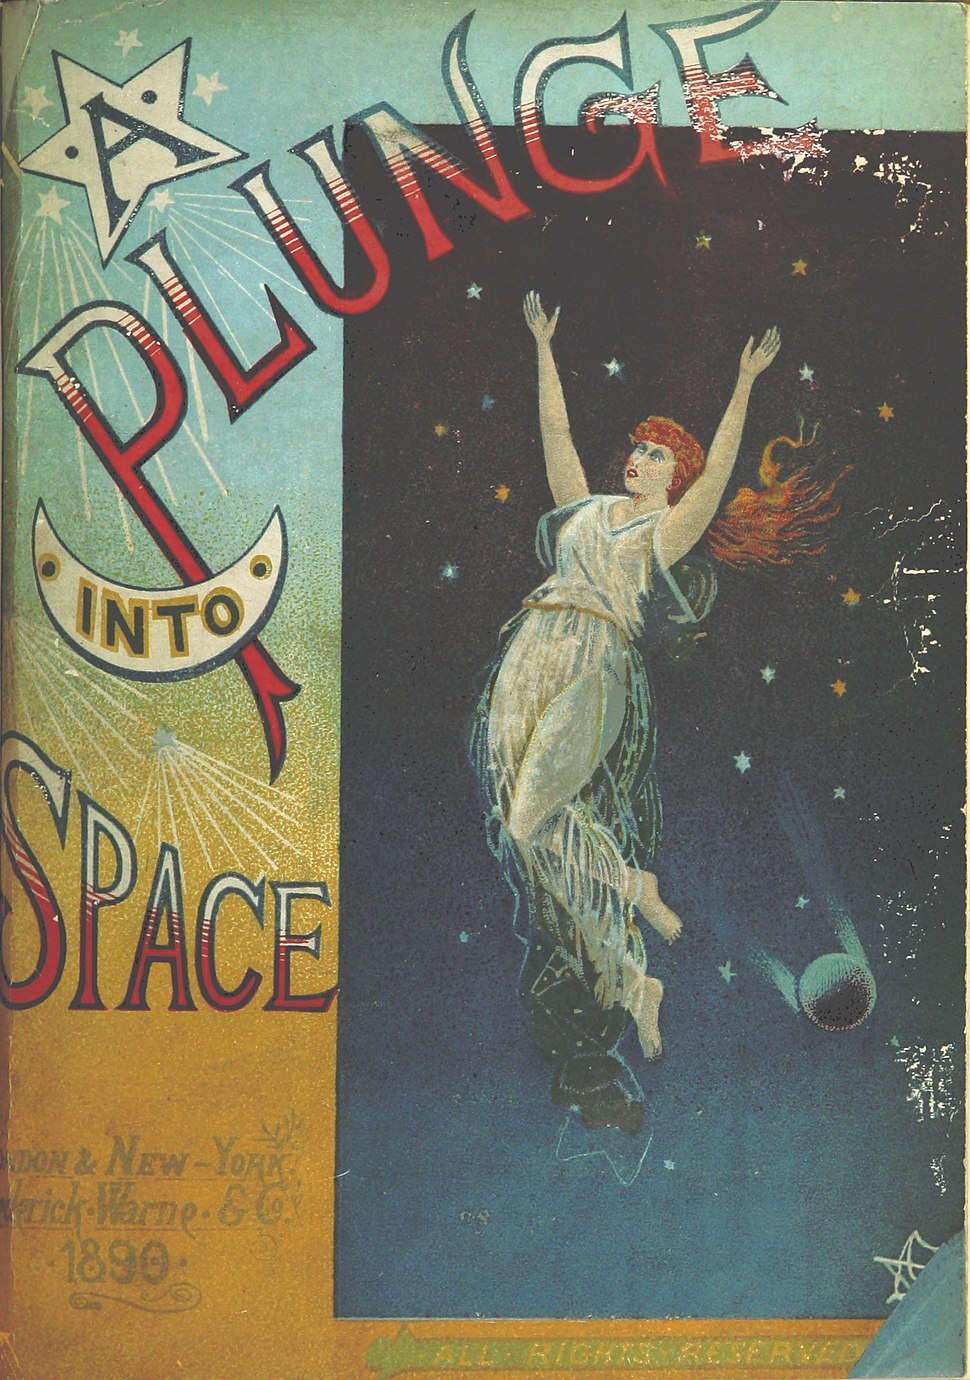 A Plunge into Space, cover image